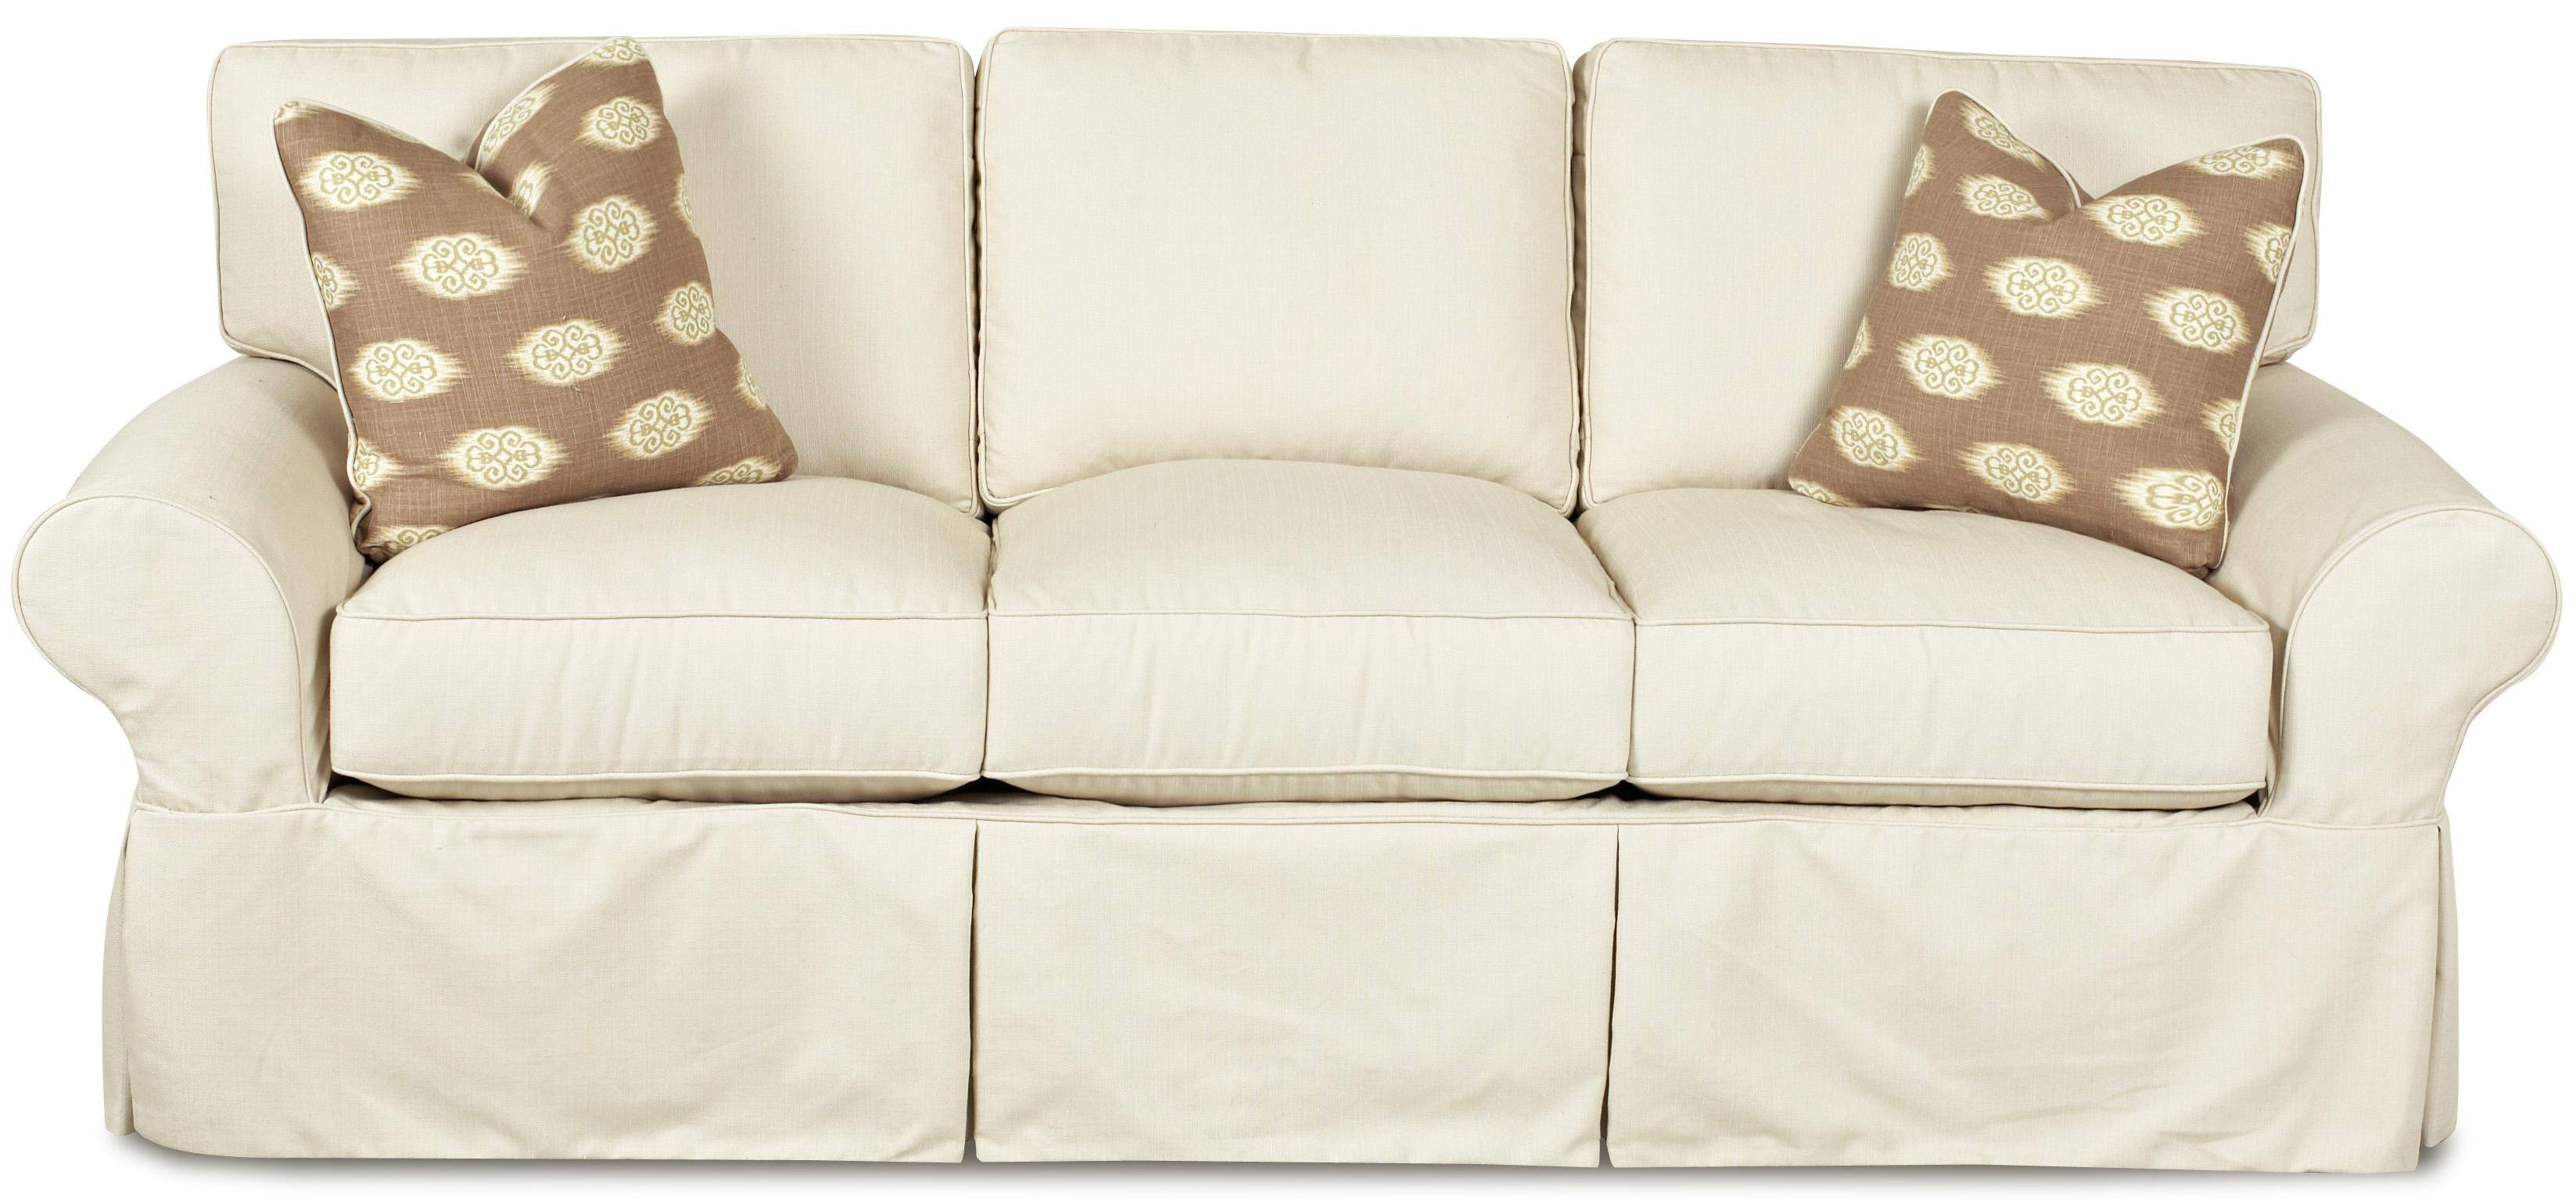 Furniture: Slipcovers For T Cushion Sofas | T Cushion Slipcovers Intended For Slipcovers For Sofas And Chairs (View 19 of 30)